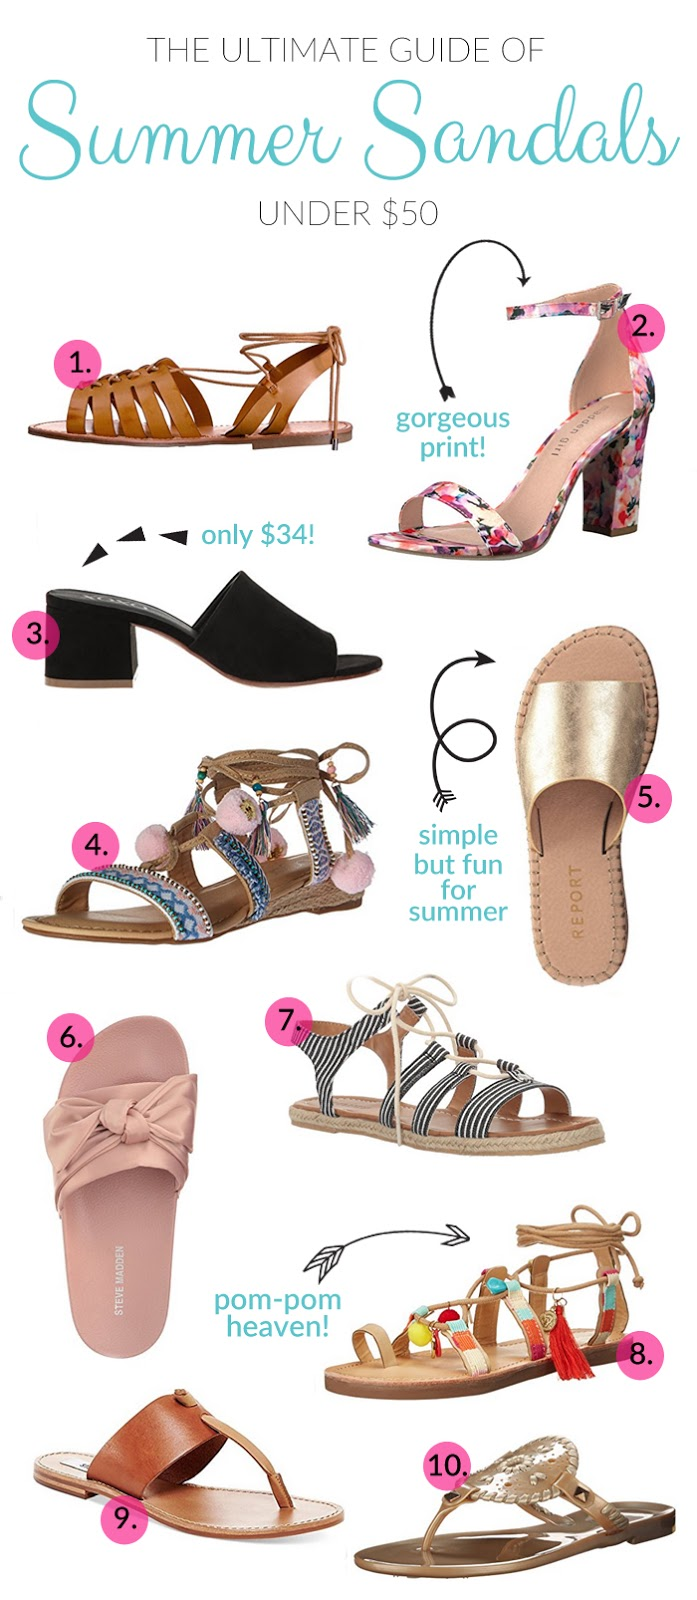 Women's Summer Sandals Guide under $50 by fashion blogger Laura of Walking in Memphis in High Heels